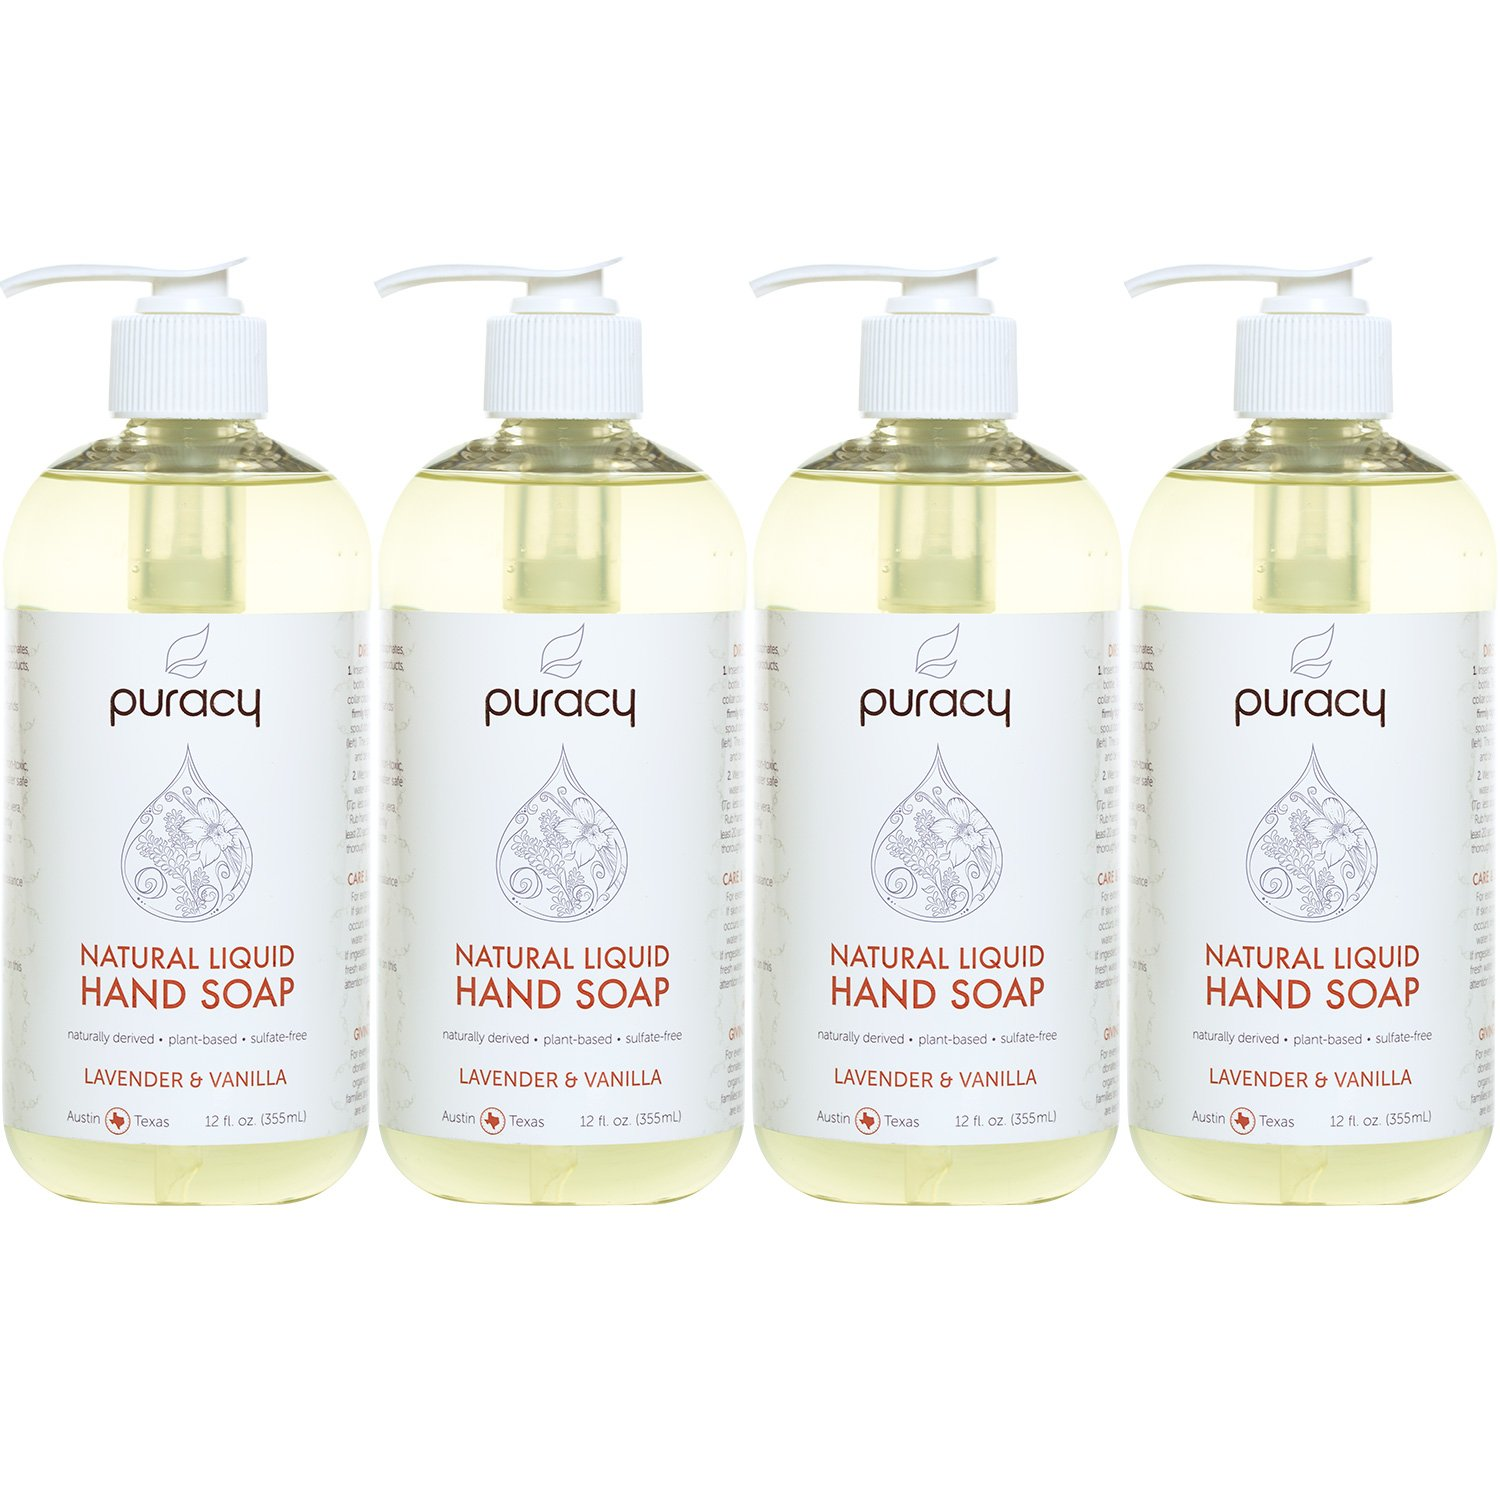 Puracy Natural Liquid Hand Soap (4-Pack), Sulfate-Free Gel Hand Wash, Lavender & Vanilla, 12 Ounce